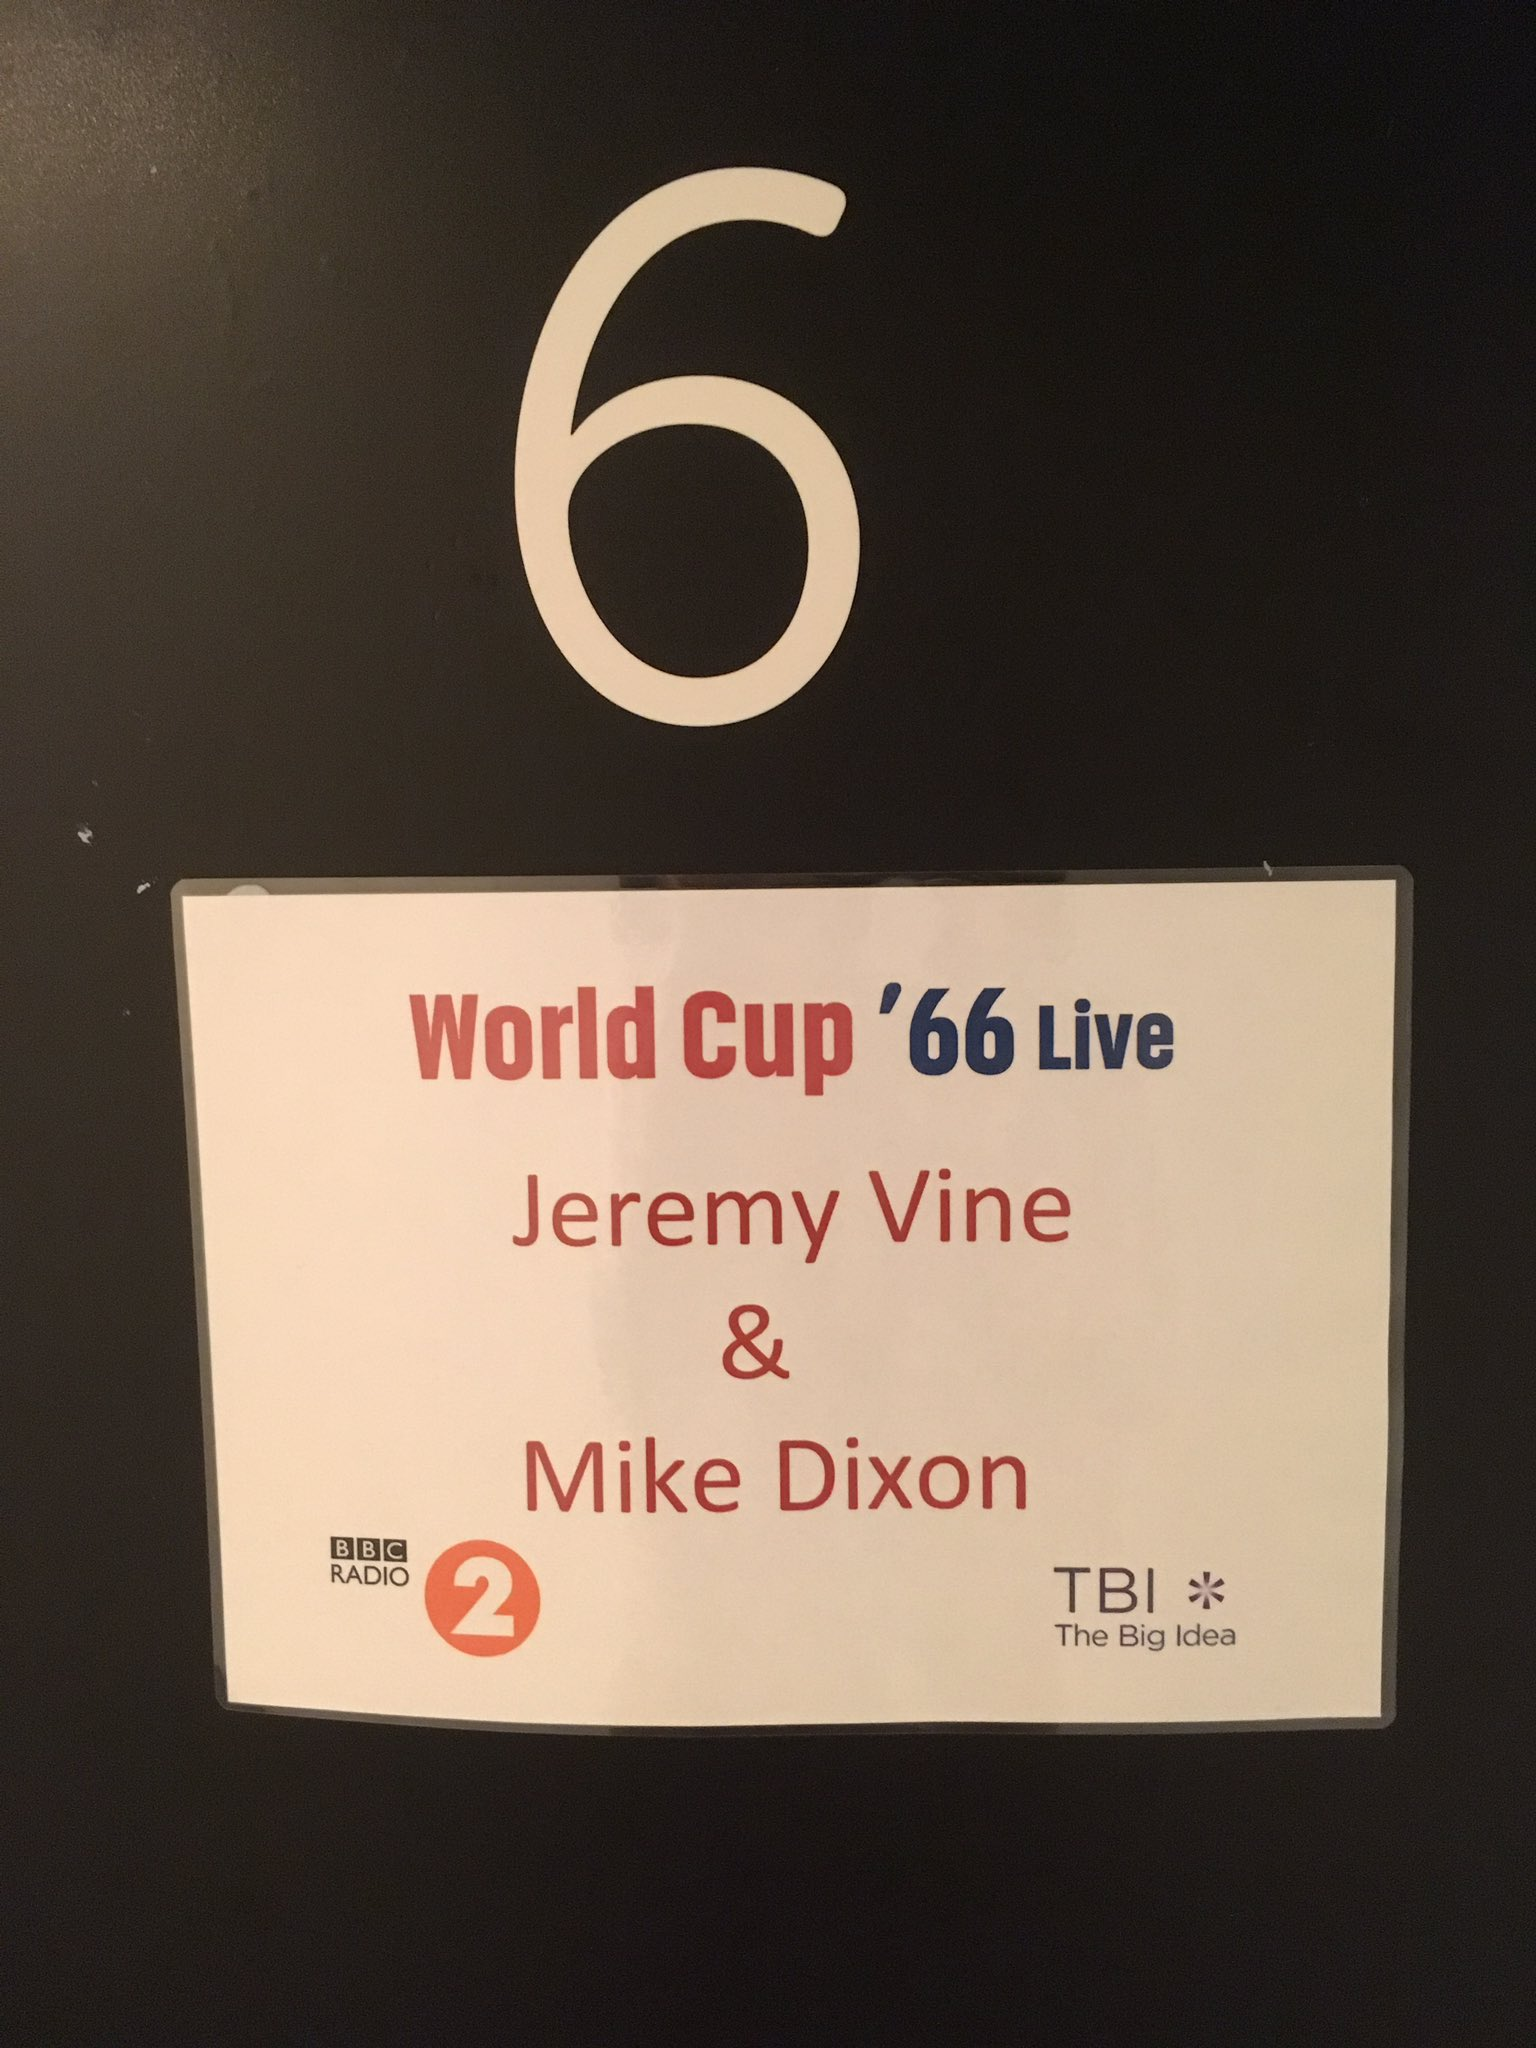 RT @mikedixonmusic: Now this is a worry!! #WC66Live @theJeremyVine @BBCRadio2 @BBCCO https://t.co/uMli1Sa7fr